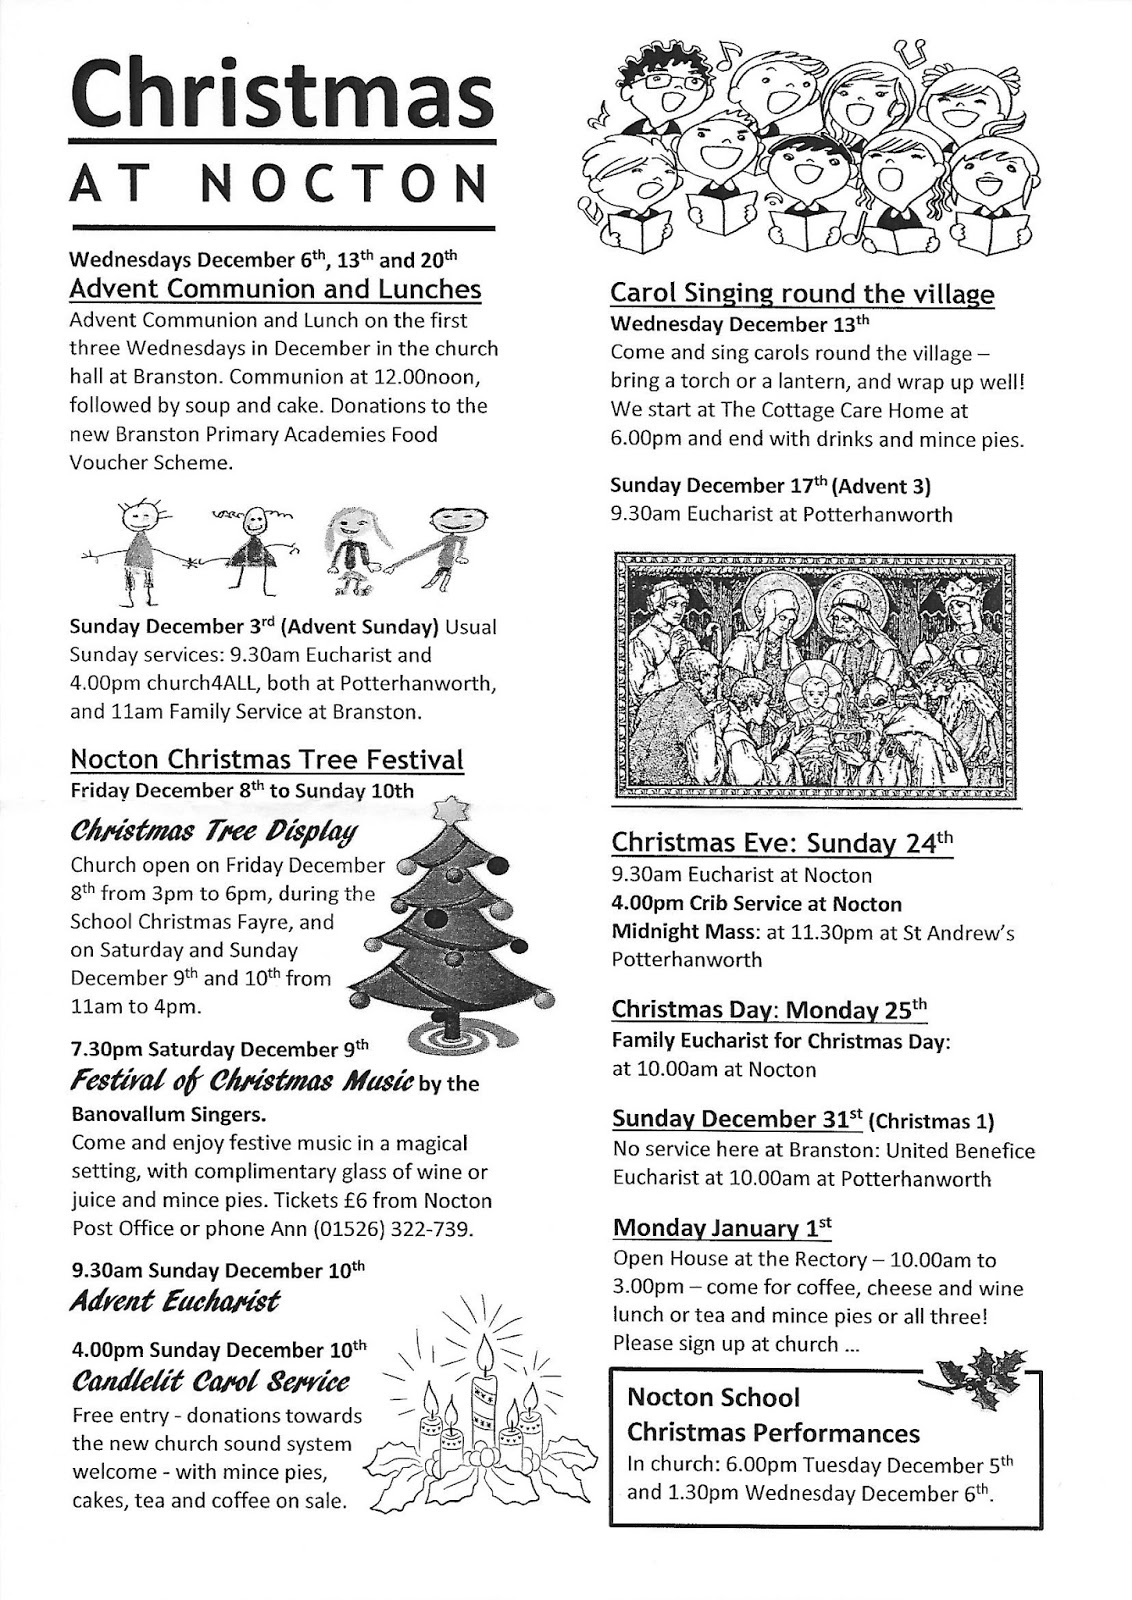 Nocton in Lincolnshire: All Saints Church - Xmas at Nocton